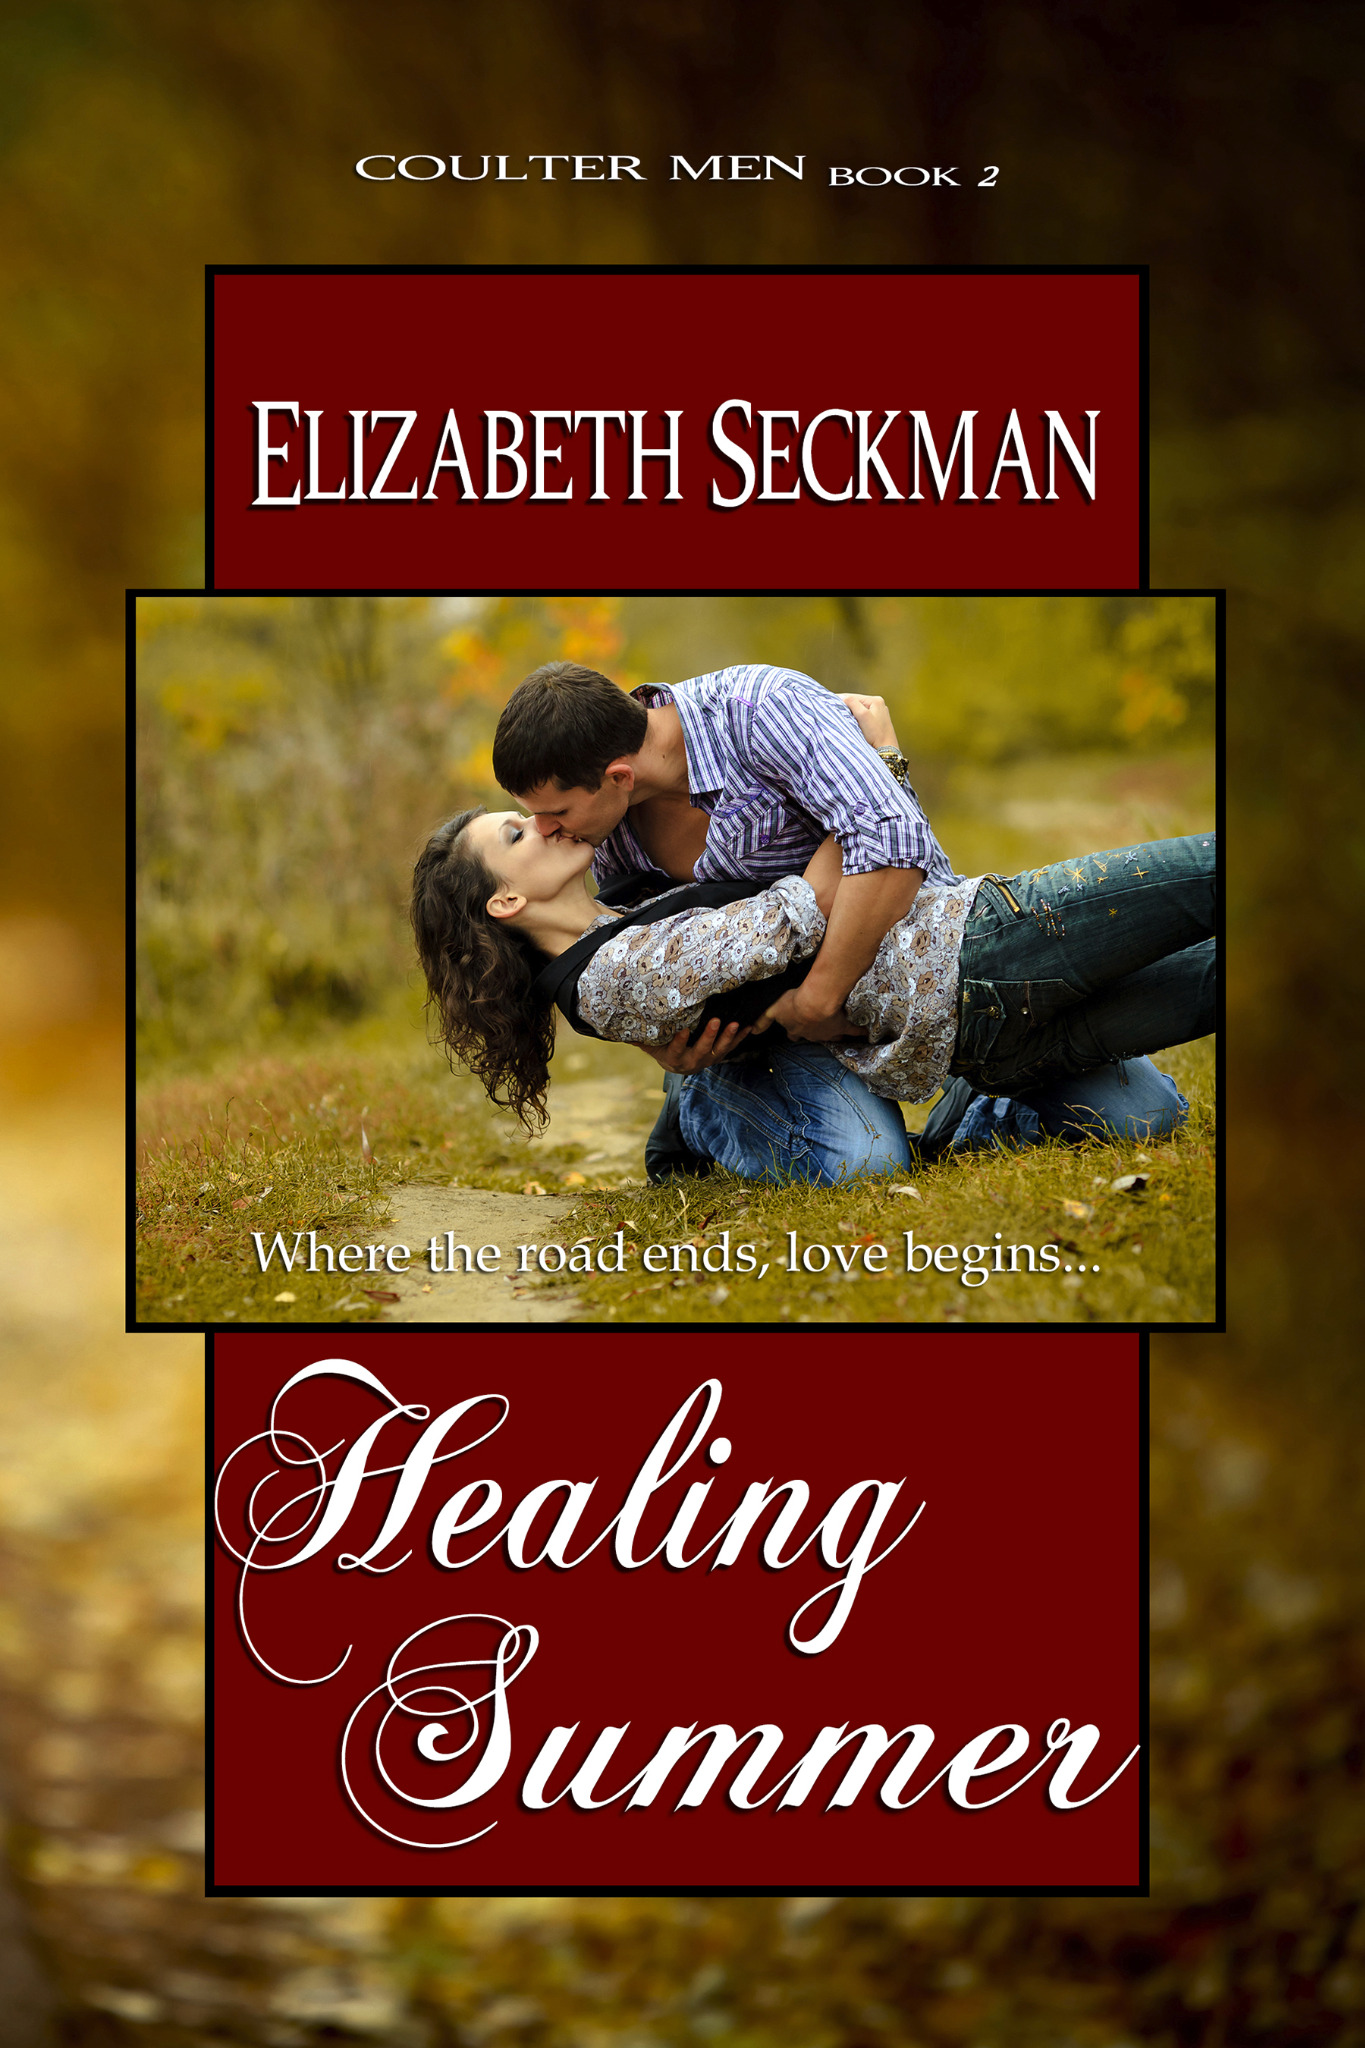 Healing Summer - Coulter Men Book 2